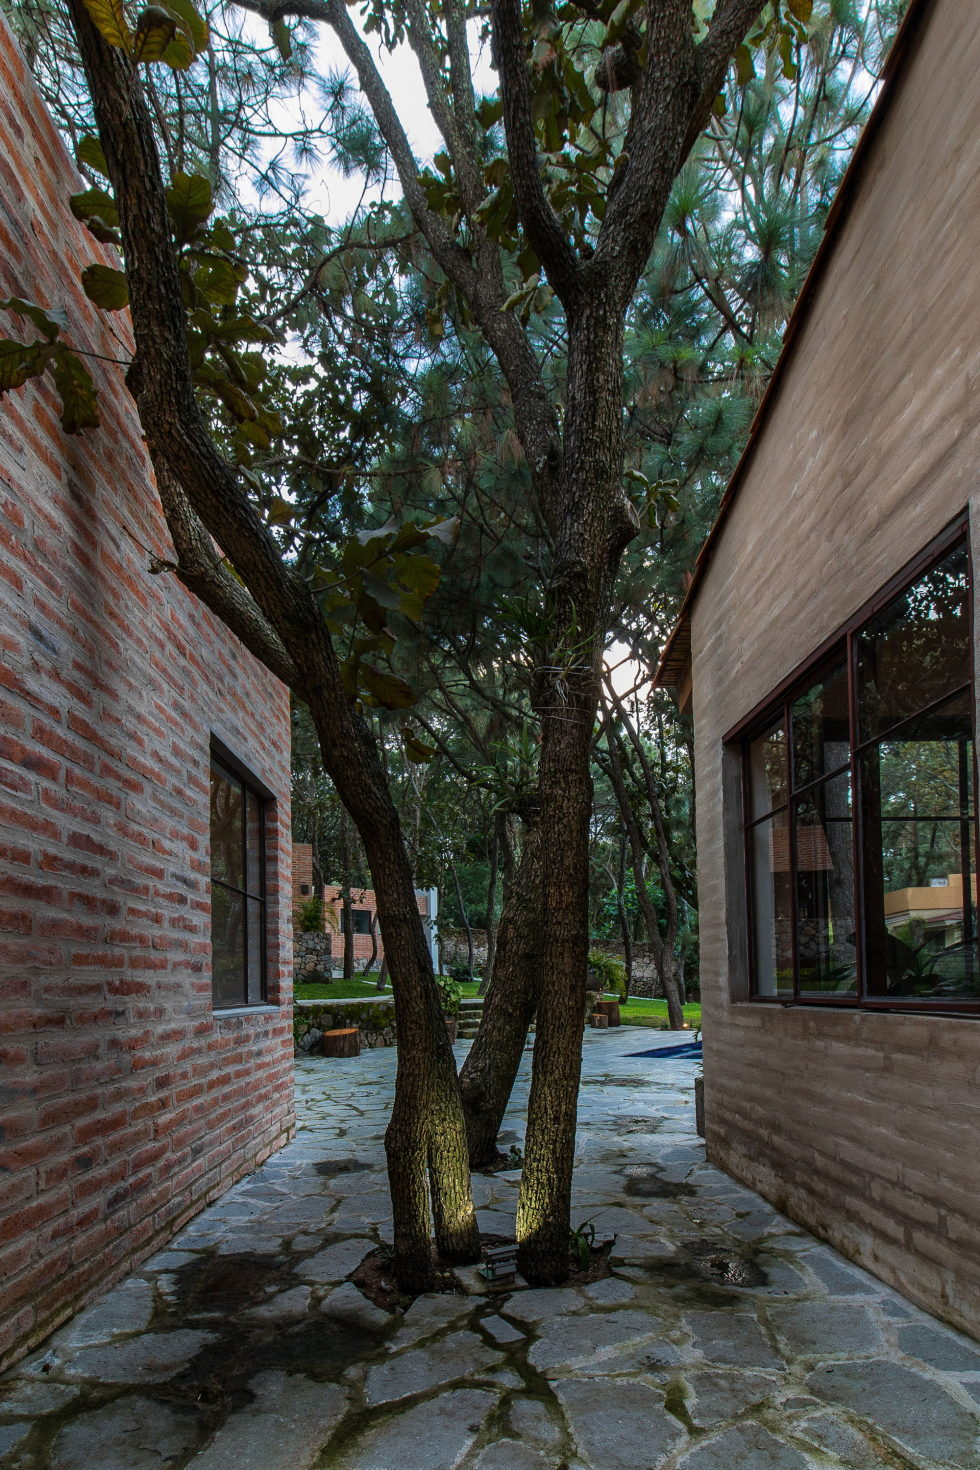 Two-Storeyed House Surounded By The Pictiresque Forest in Mexico From MO+G taller de arquitectura 4